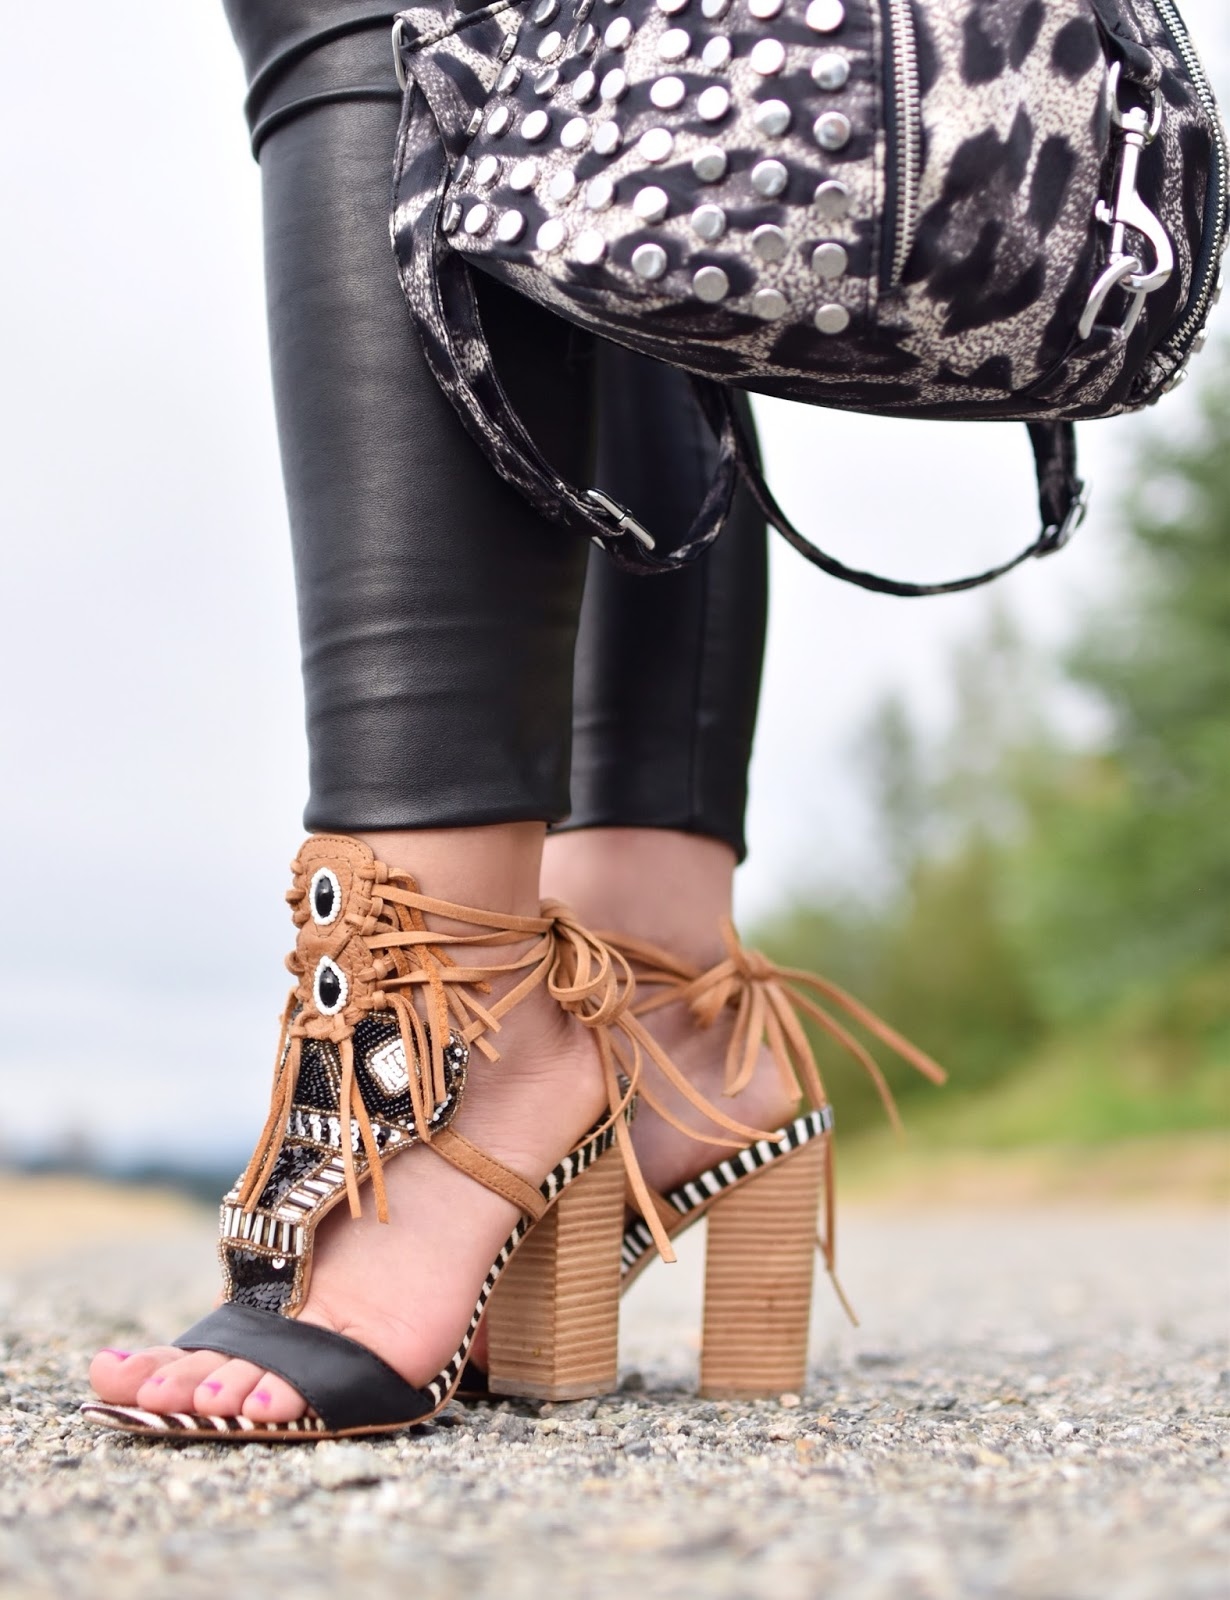 Monika Faulkner personal style inspiration - black vegan leather leggings, beaded fringe-embellished sandals, leopard-patterned backpack